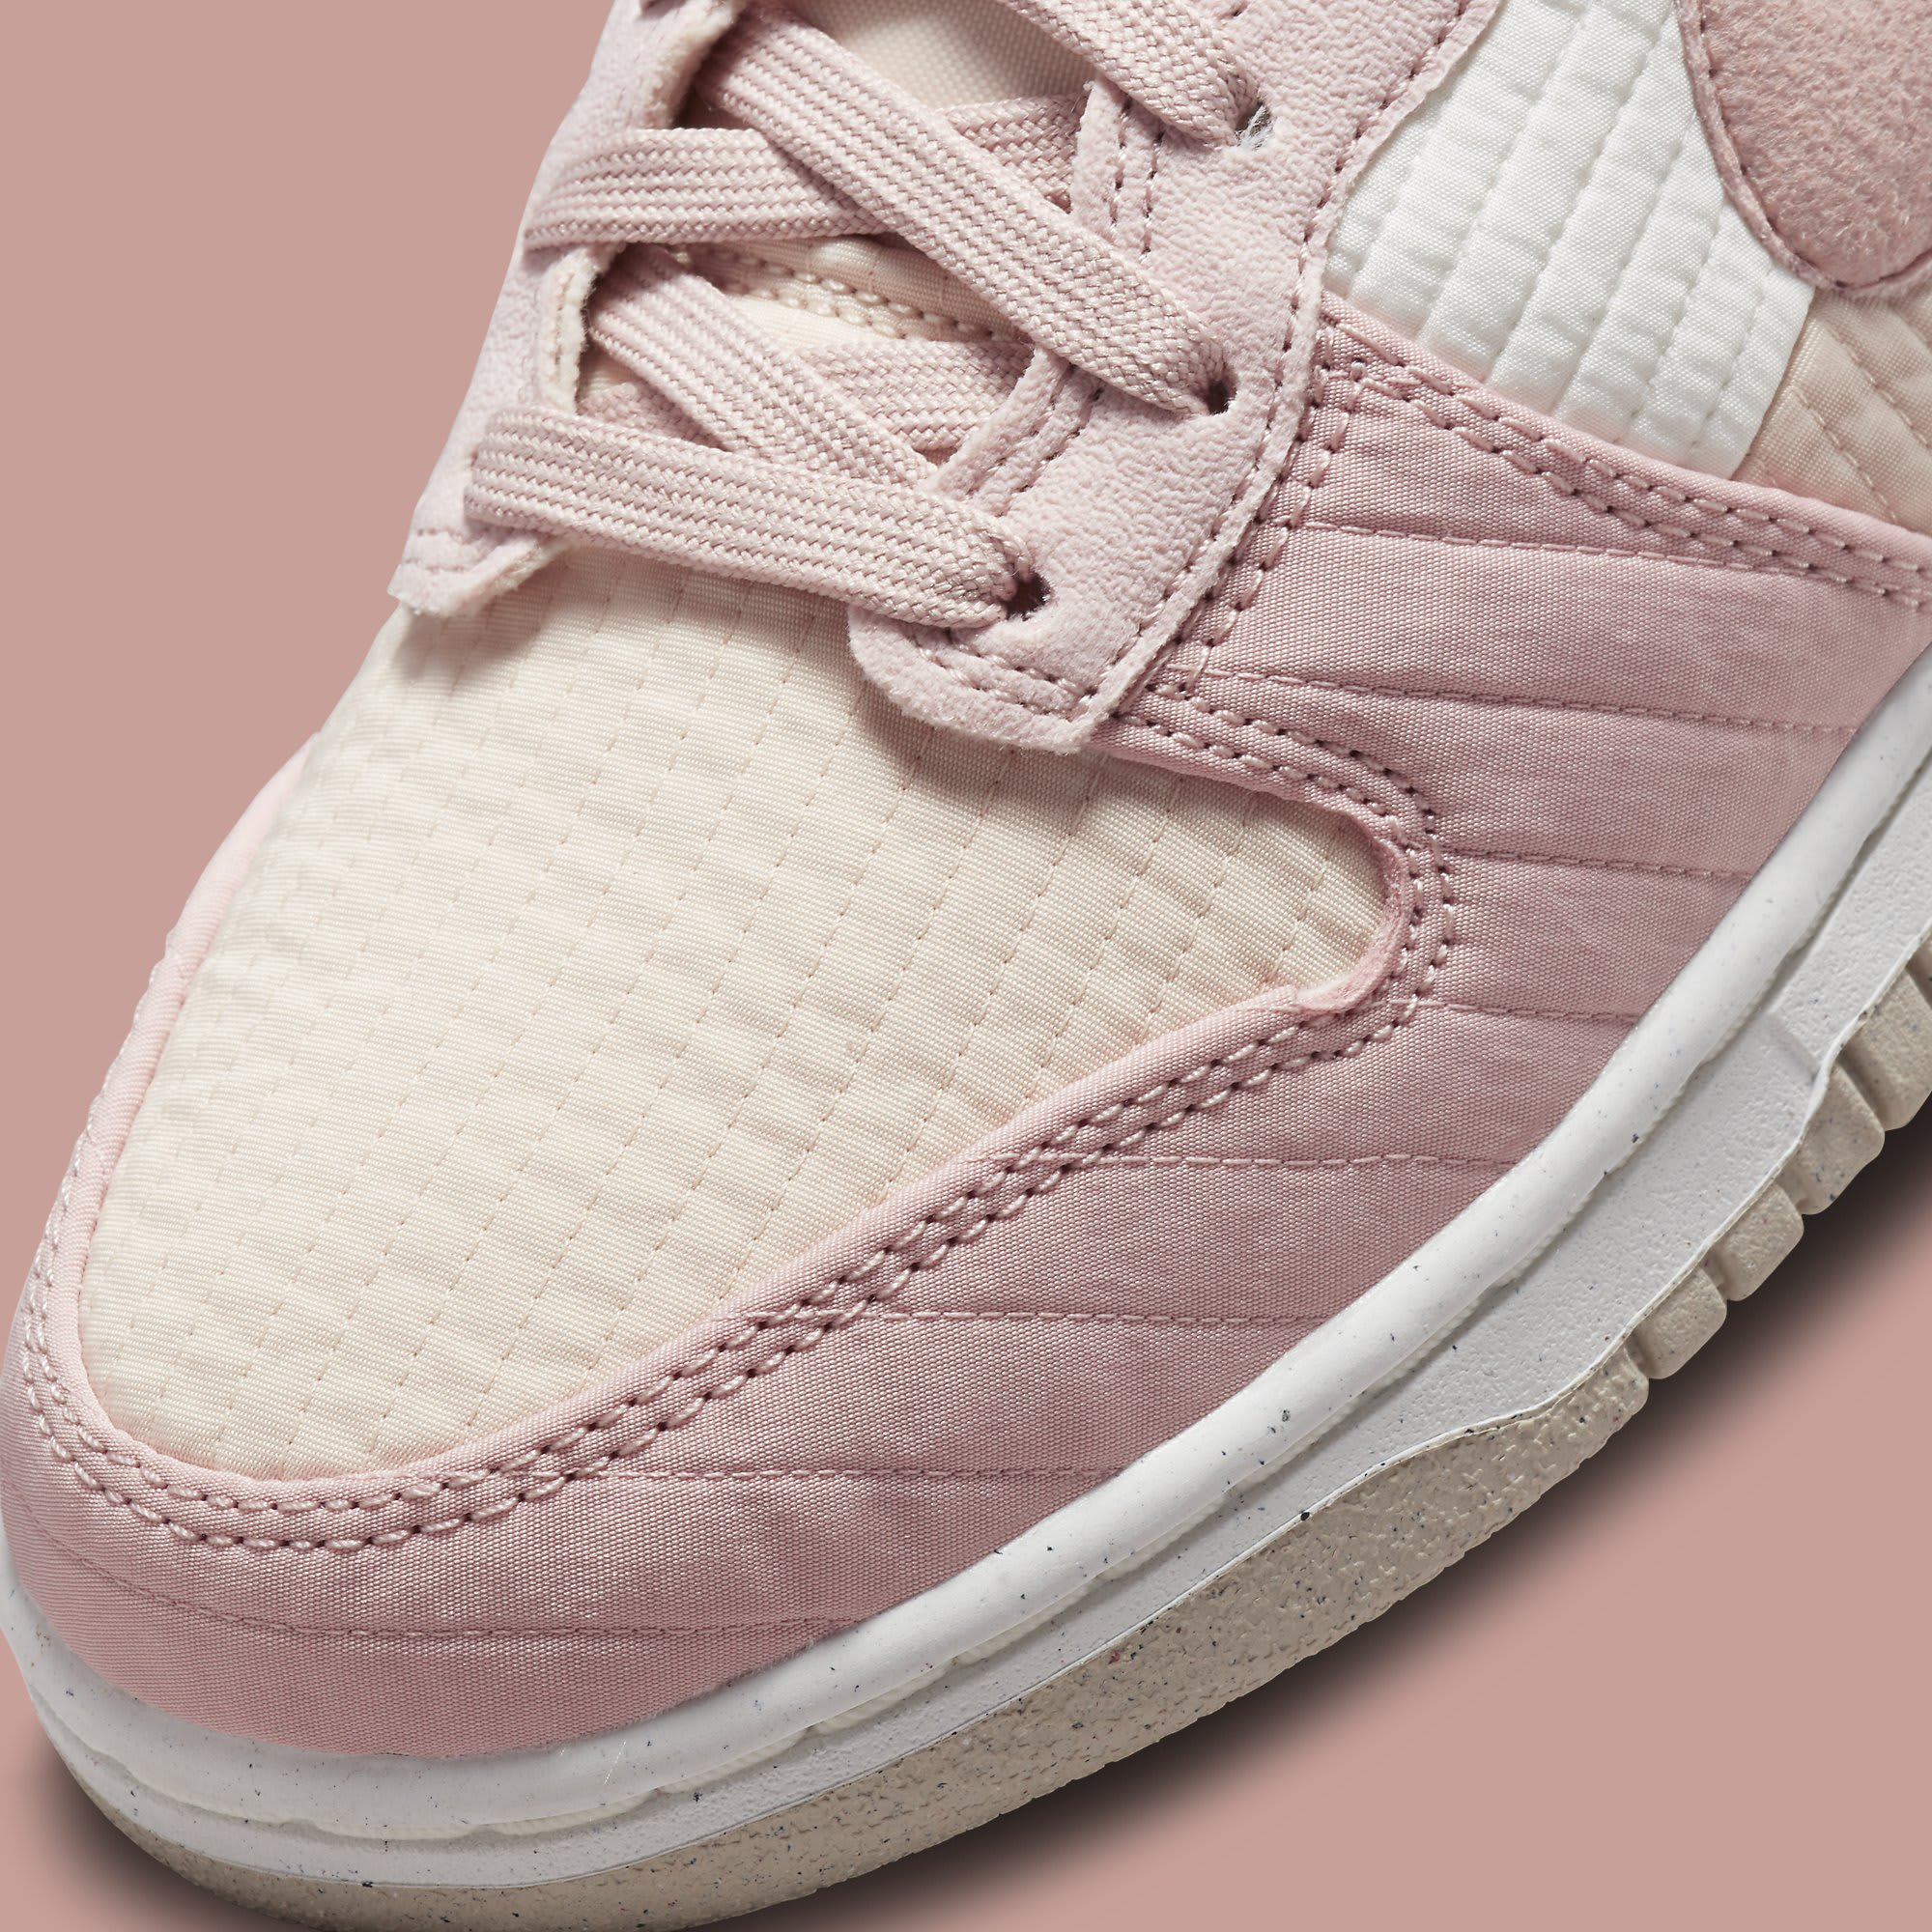 Nike Dunk High Toasty Pink DN9909-200 Release Date Toe Detail